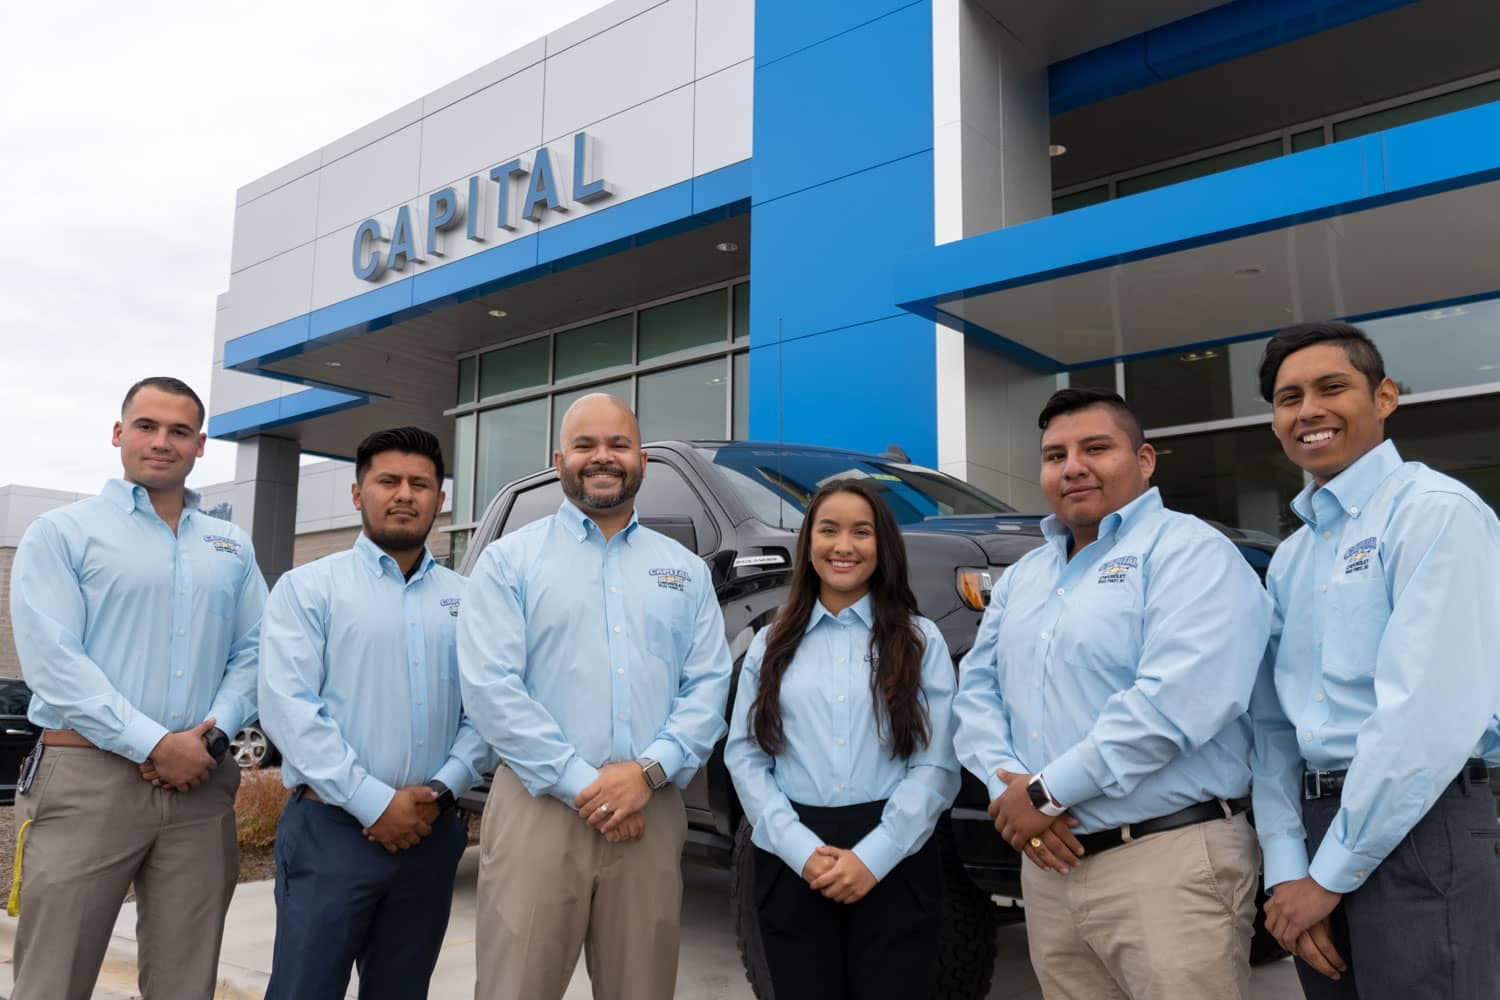 Capital Chevy Group